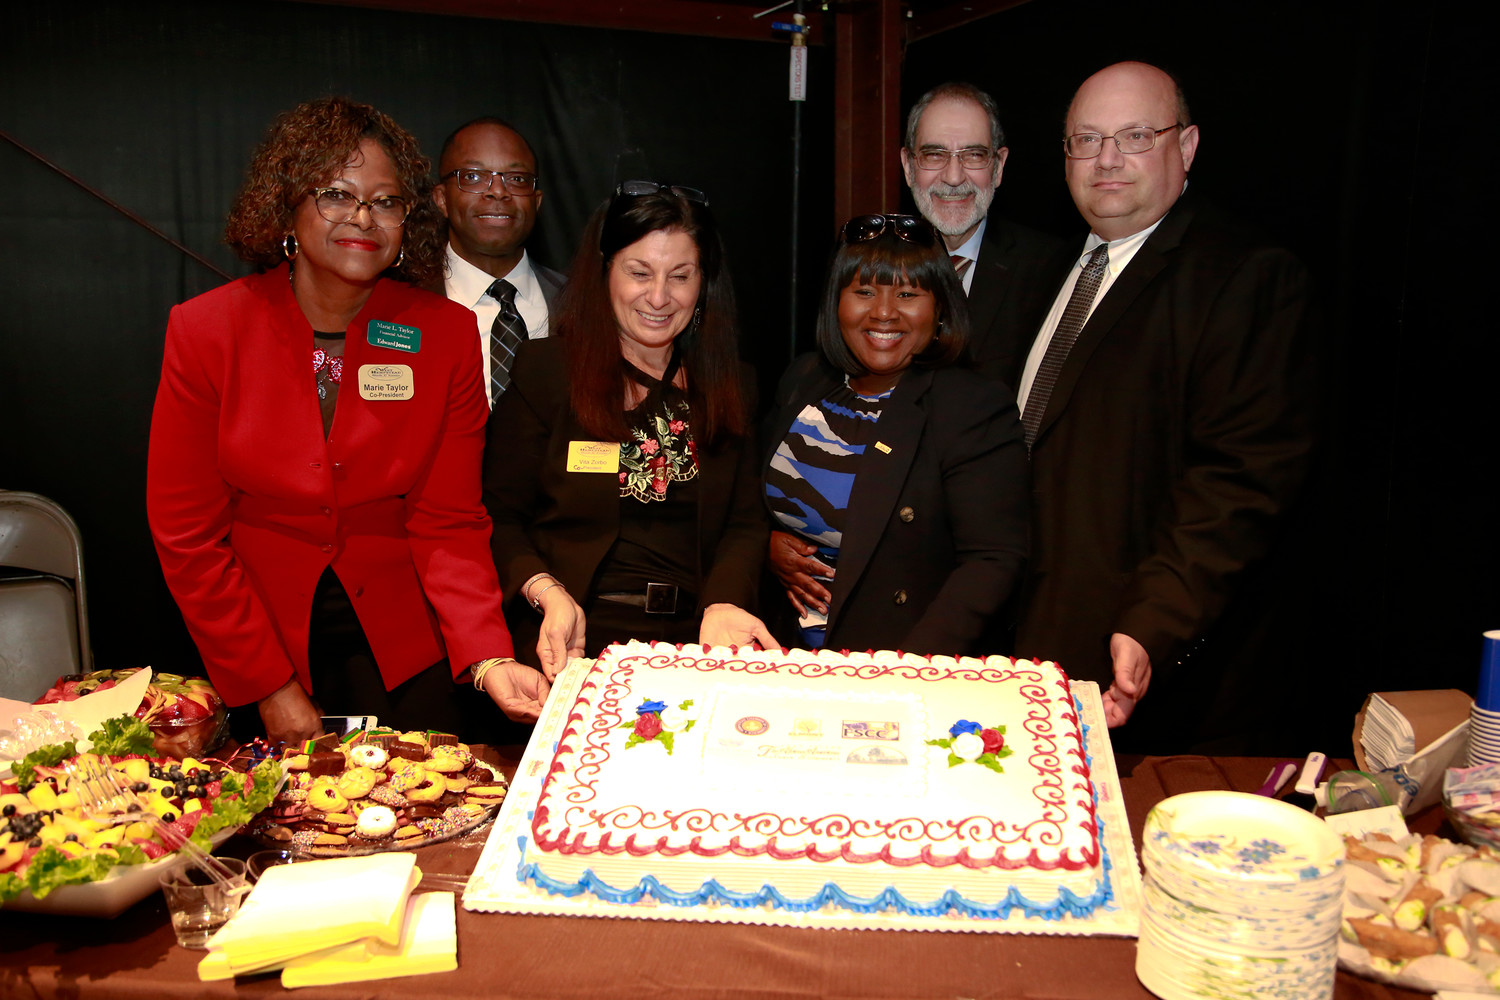 Marie Taylor, left, Dennis Jones, Vita Zorbo, Valerie Anderson Campbell, Paul Sapienze and Bruno Caracciolo cut the cake.